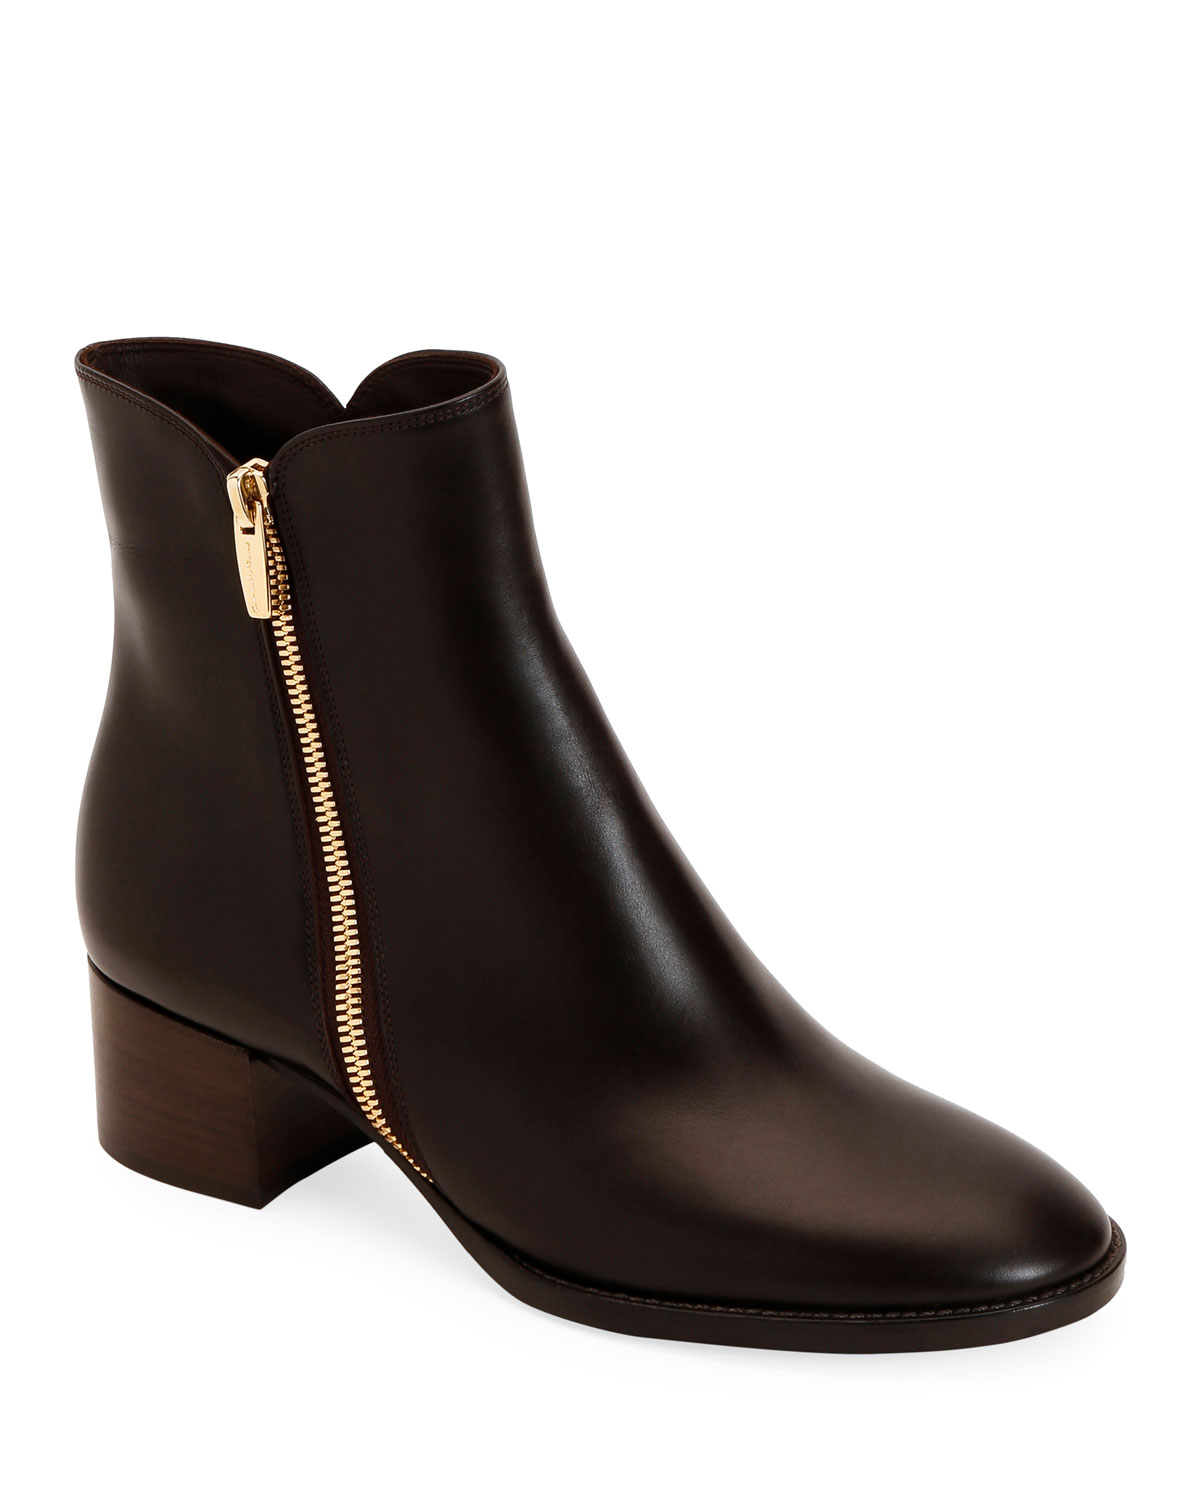 Low Heel Smooth Leather Zip Booties by Gianvito Rossi